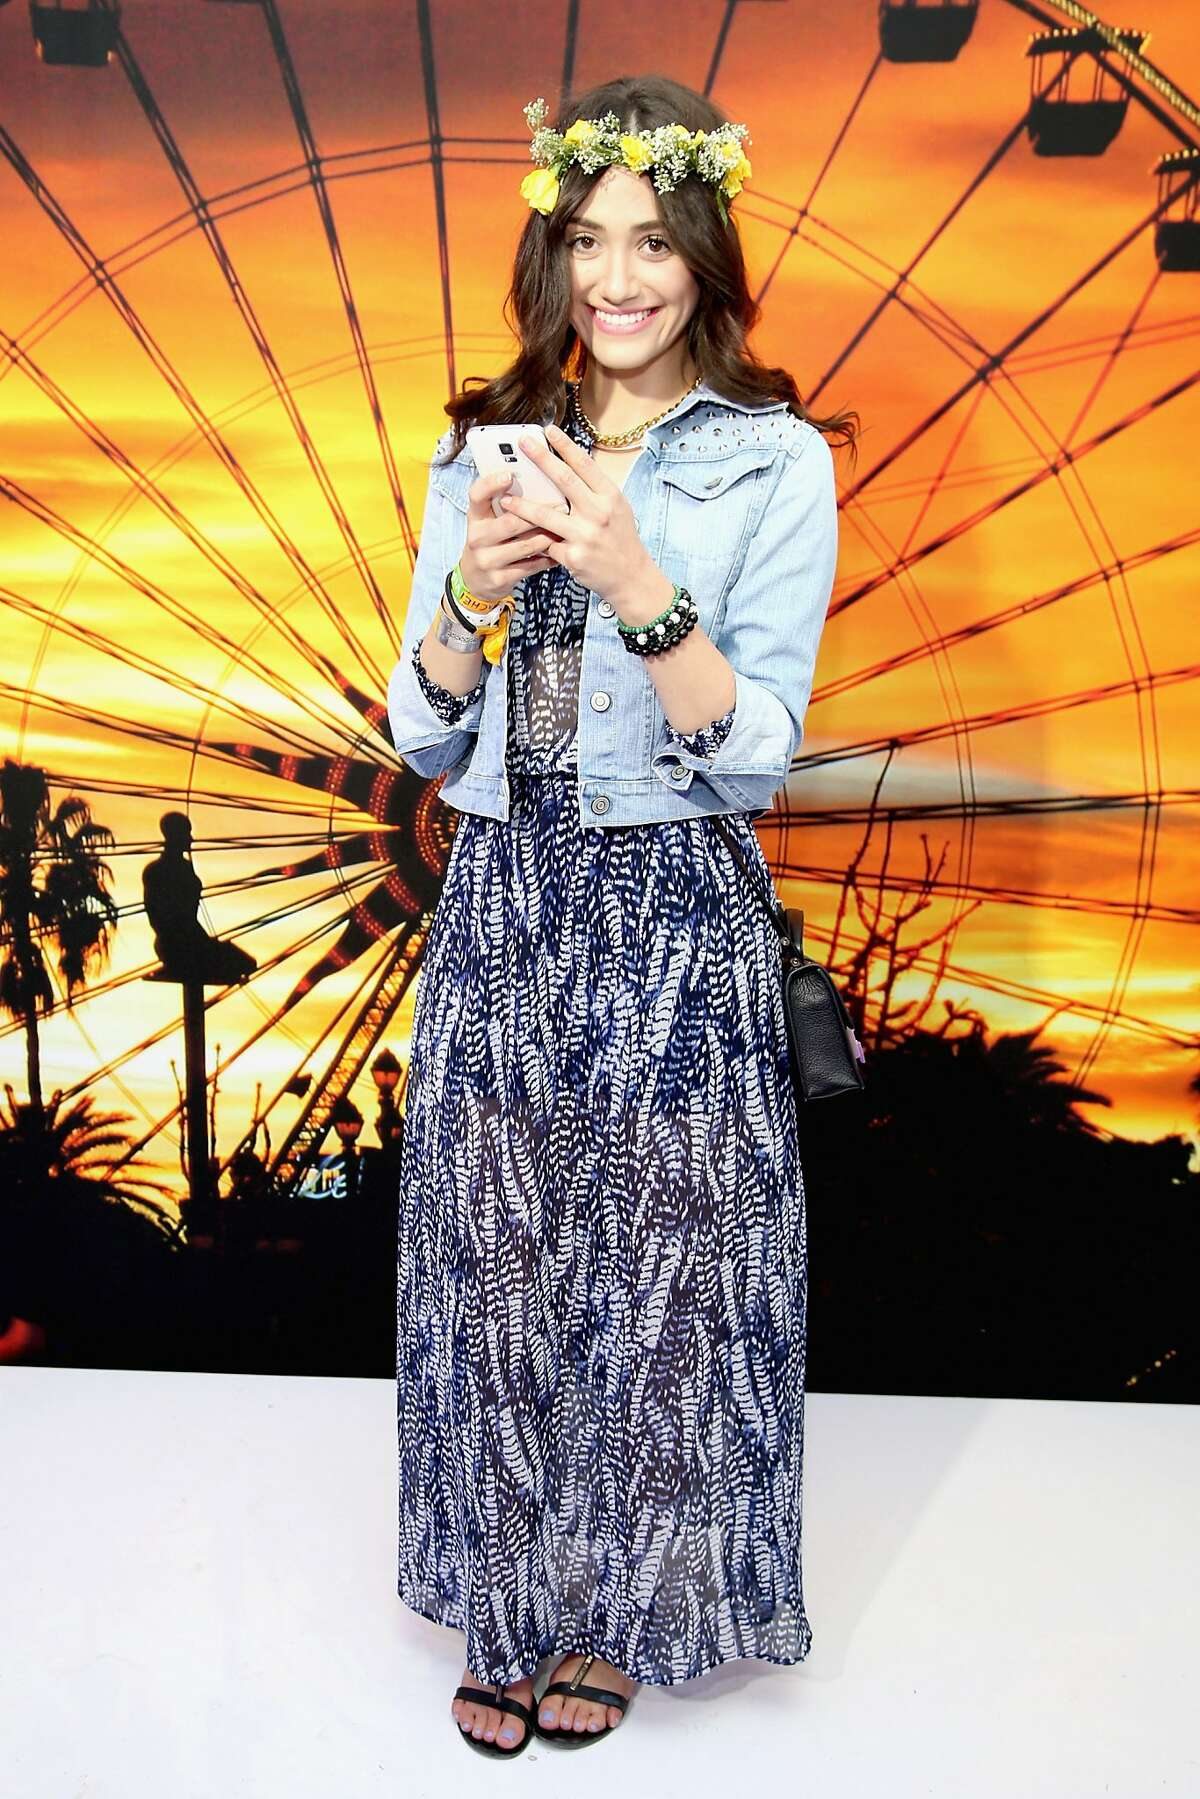 In case you missed it, we poked fun at a few of the style trends dominating Coachella 2014. Click through the gallery to see some of the elements that define today's festival fashion for better or worse. Pictured: Actress Emily Rossum, in garland and jean jacket, at Coachella in April.